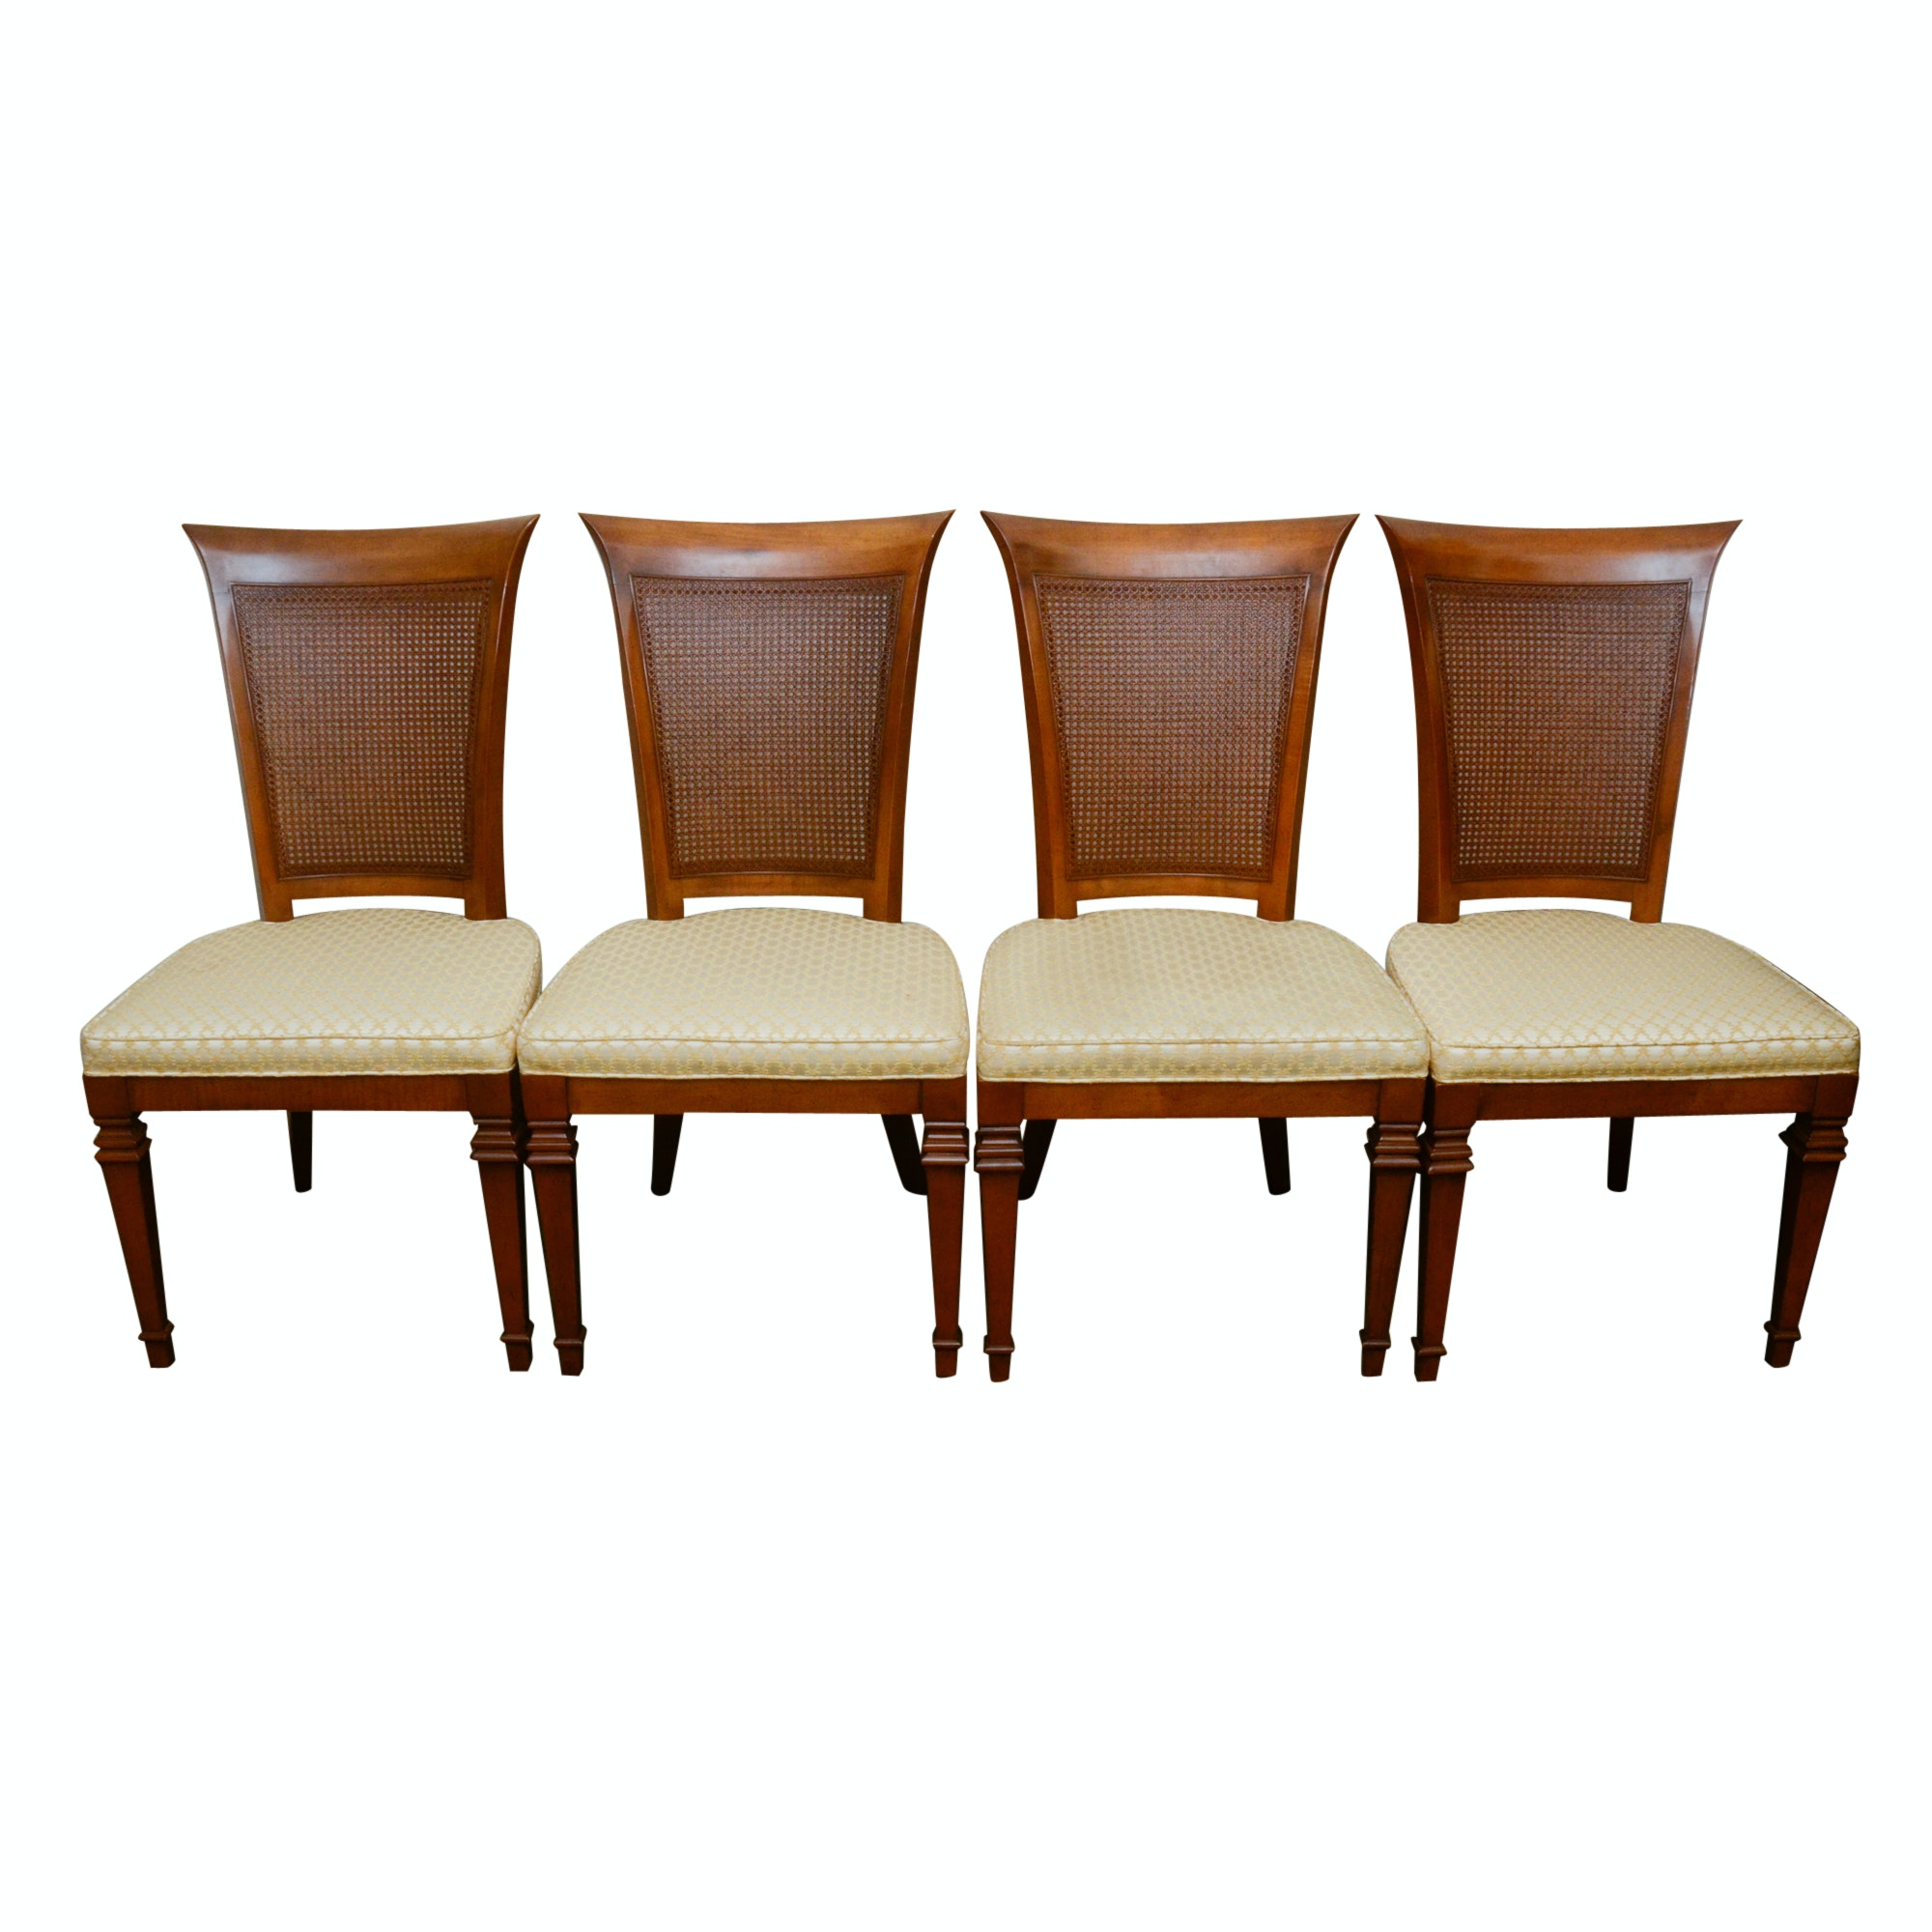 Set of Cane Dining Chairs